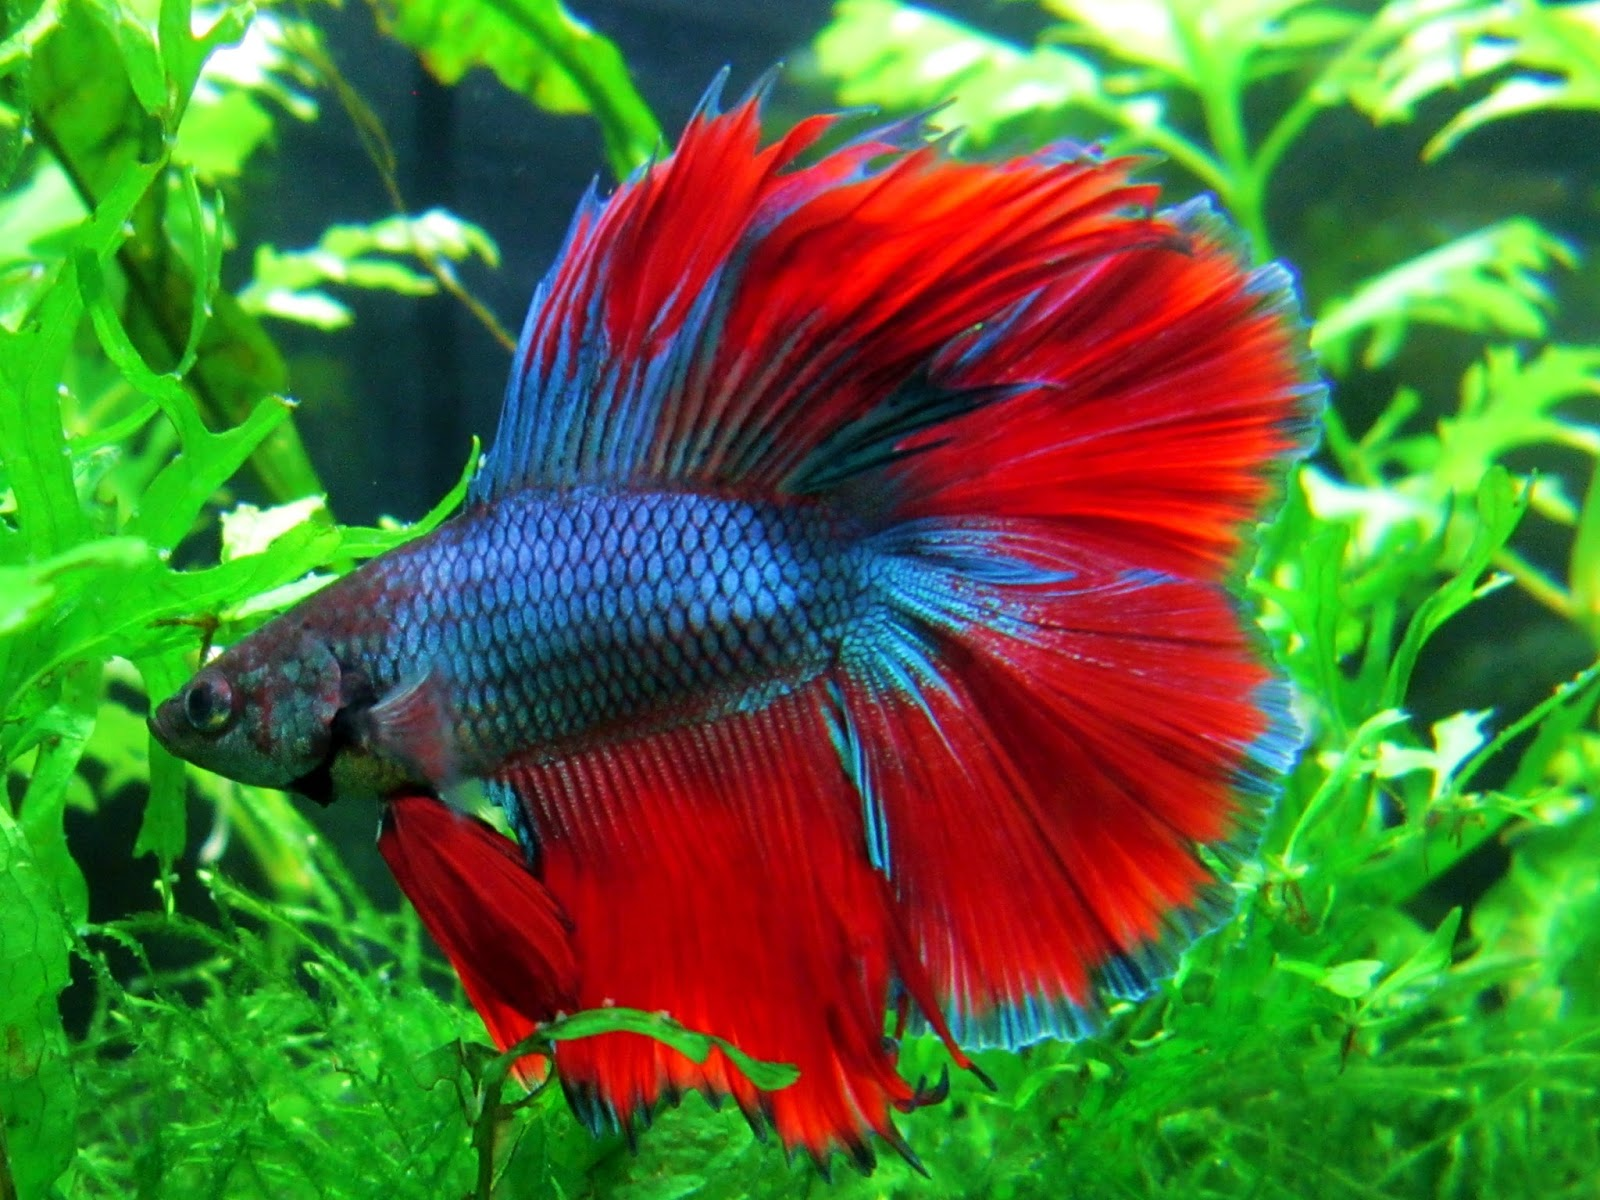 All About Bettas fish: Betta Fish Care Guide